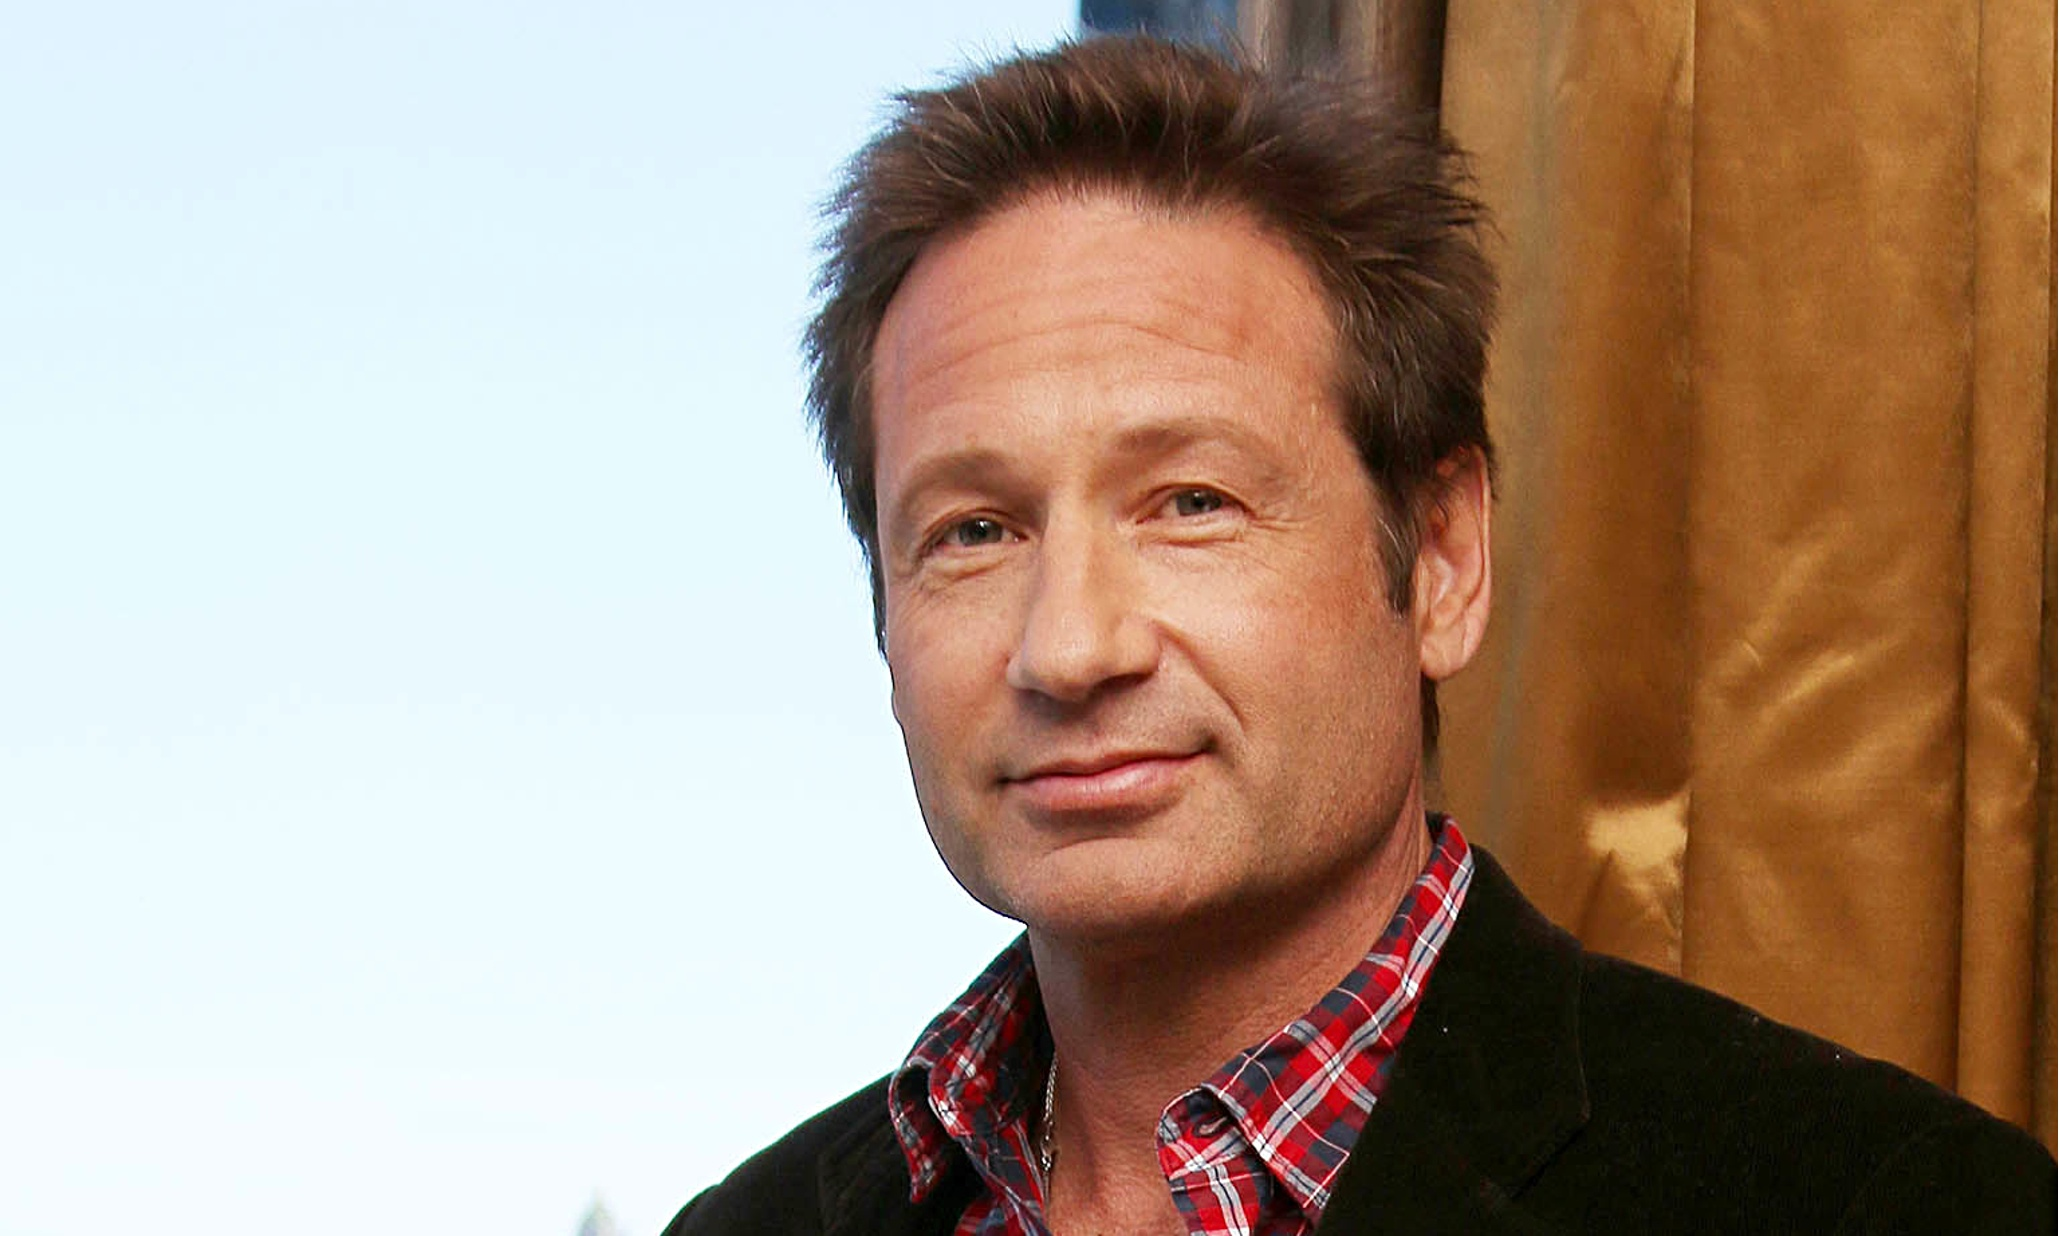 David Duchovny Backgrounds on Wallpapers Vista